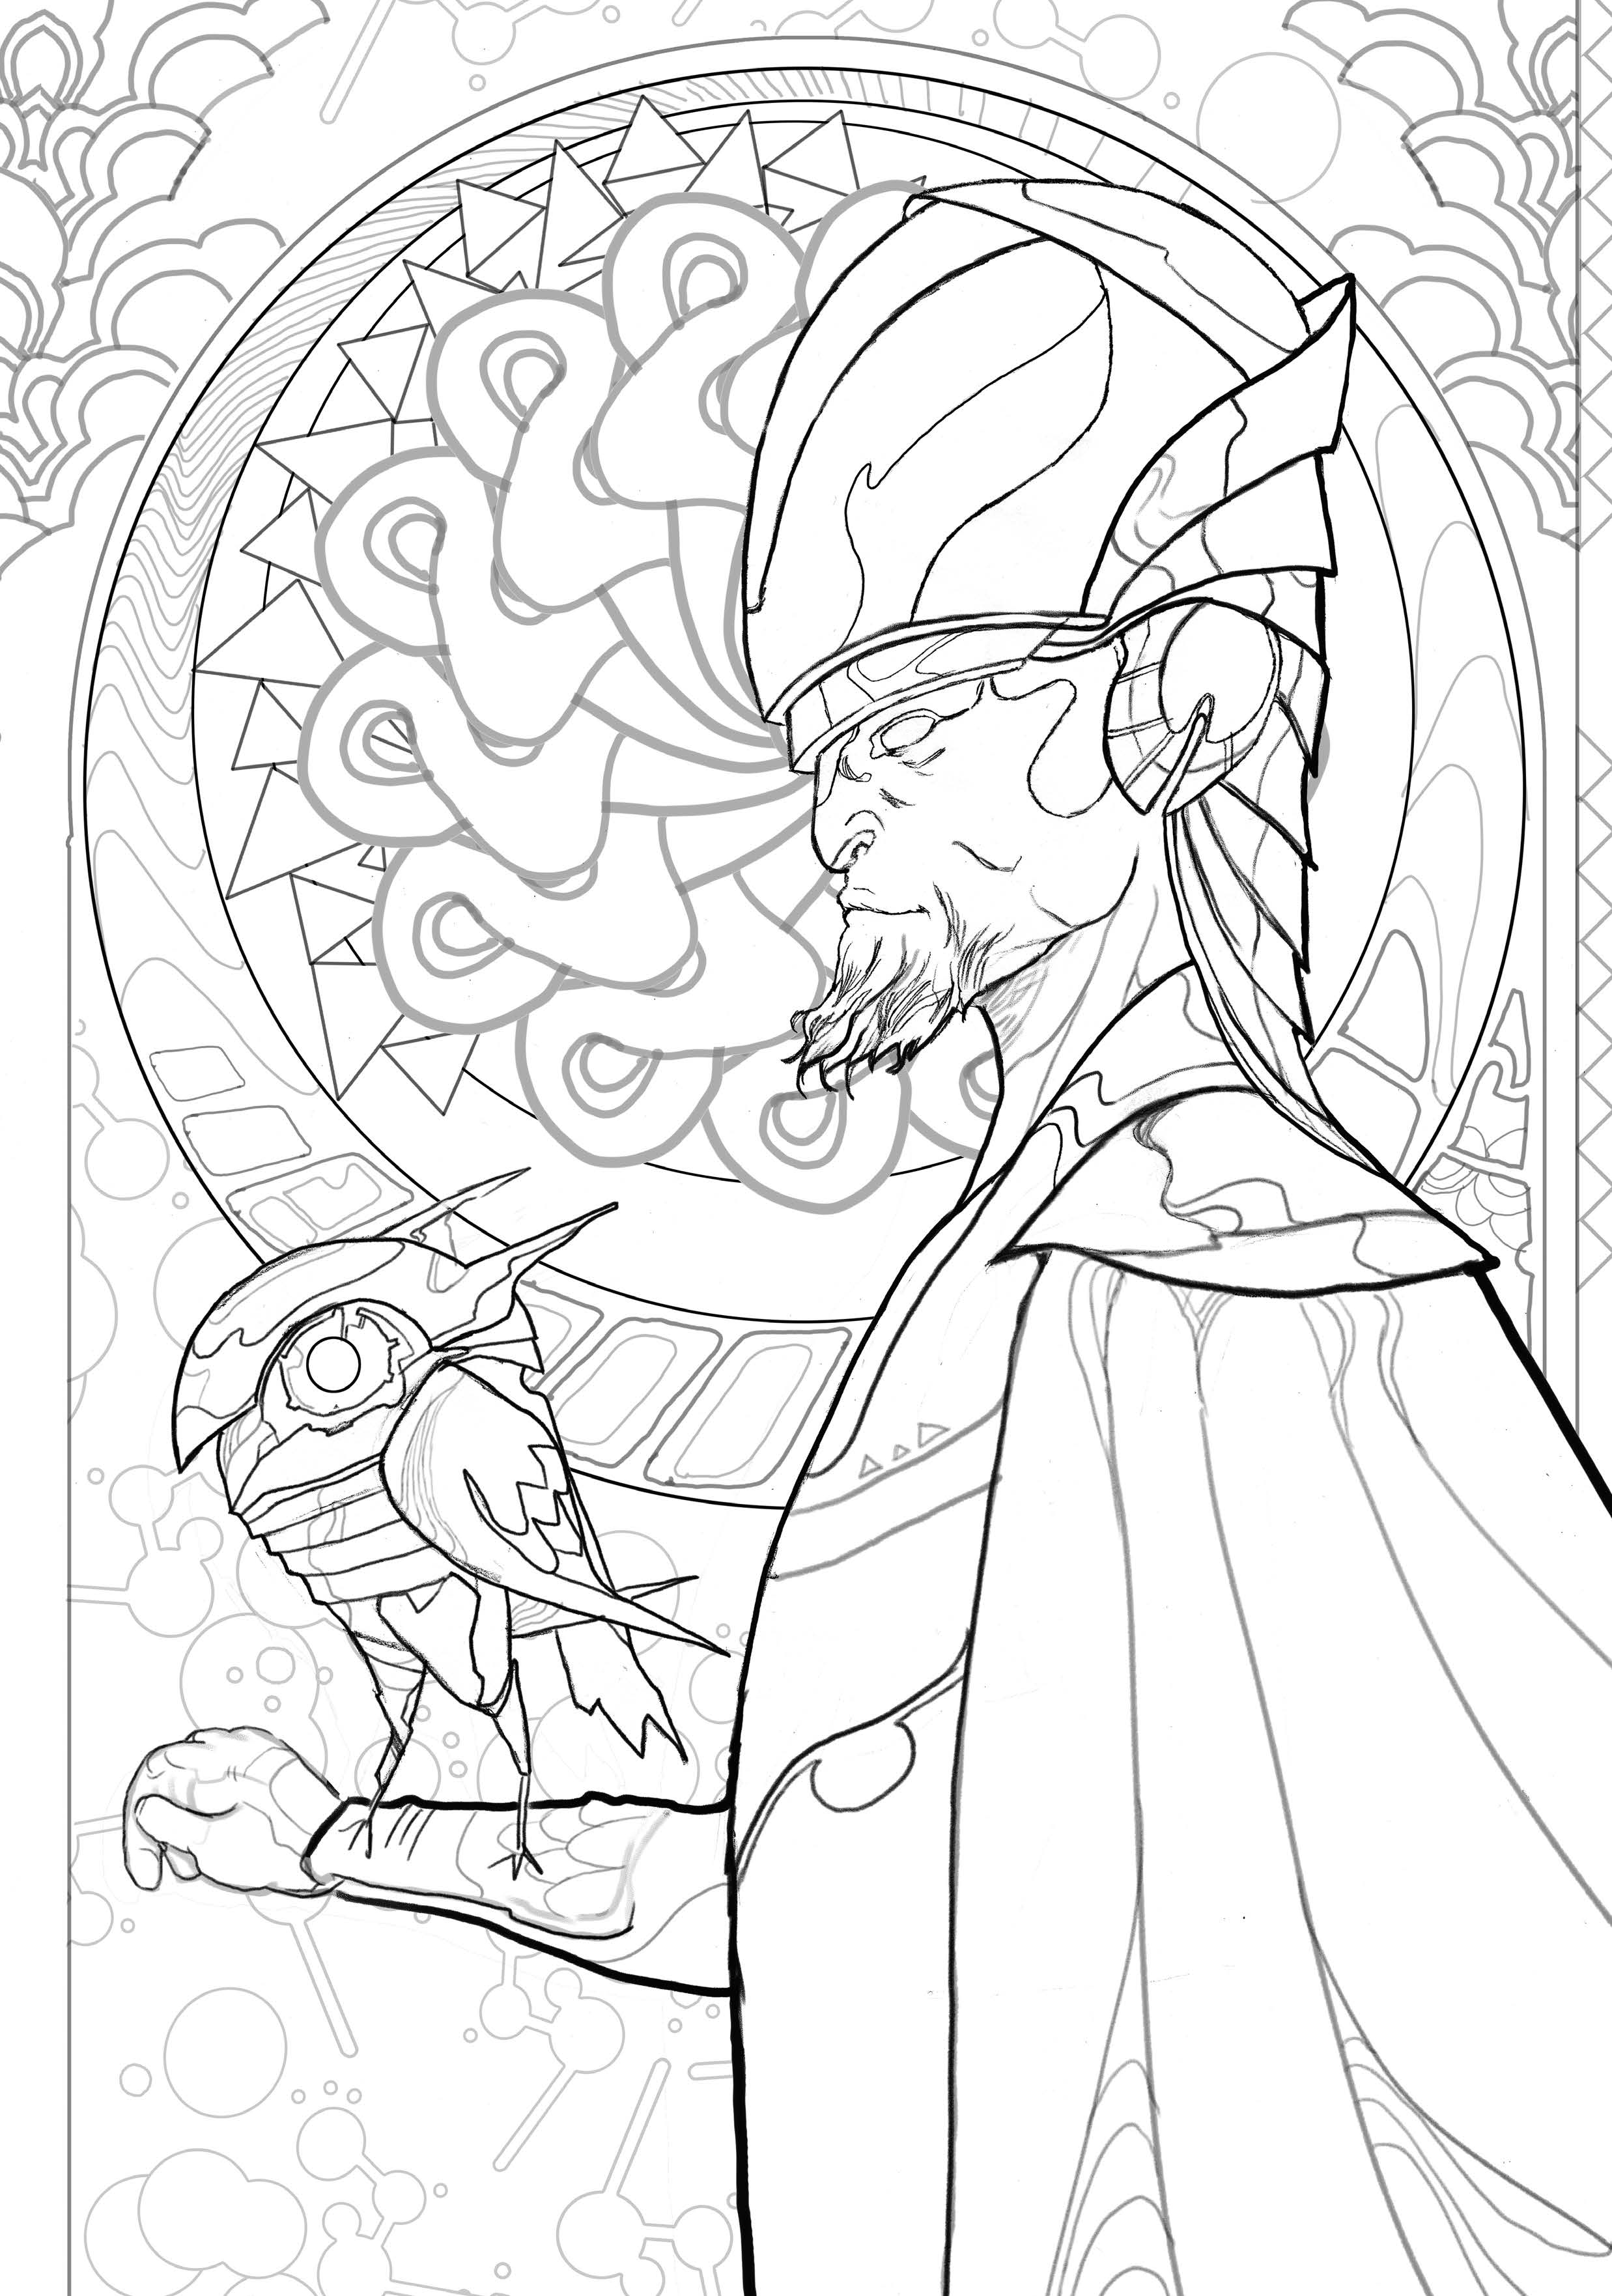 Image Releases Coloring Book Pages From ODY-C